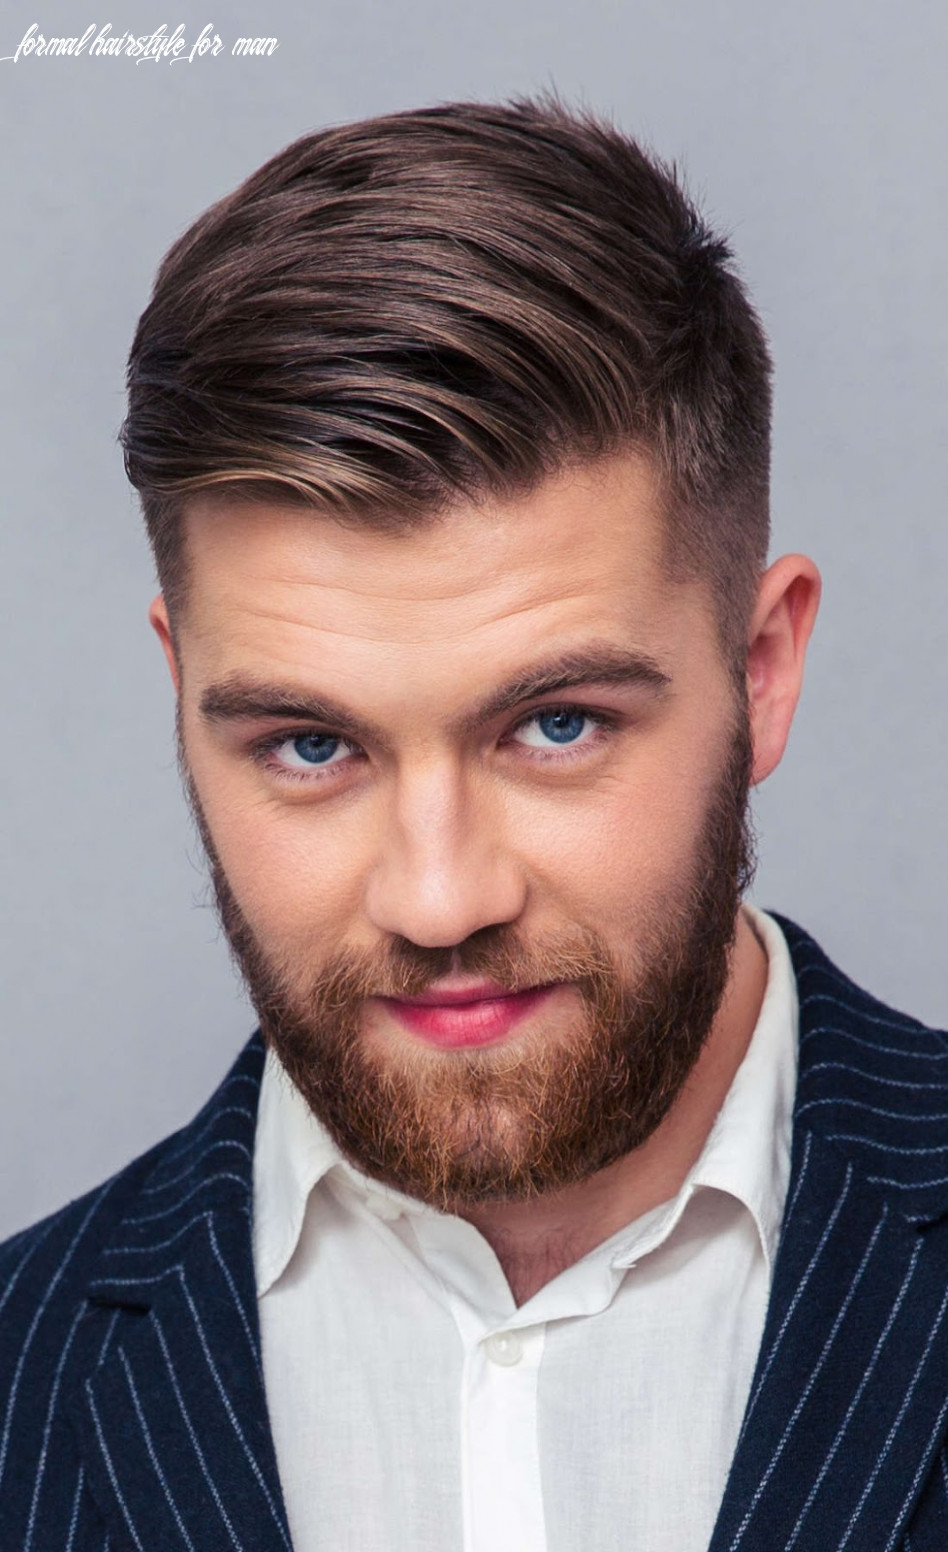 Best office hairstyle for men | 12 best business hairstyles for